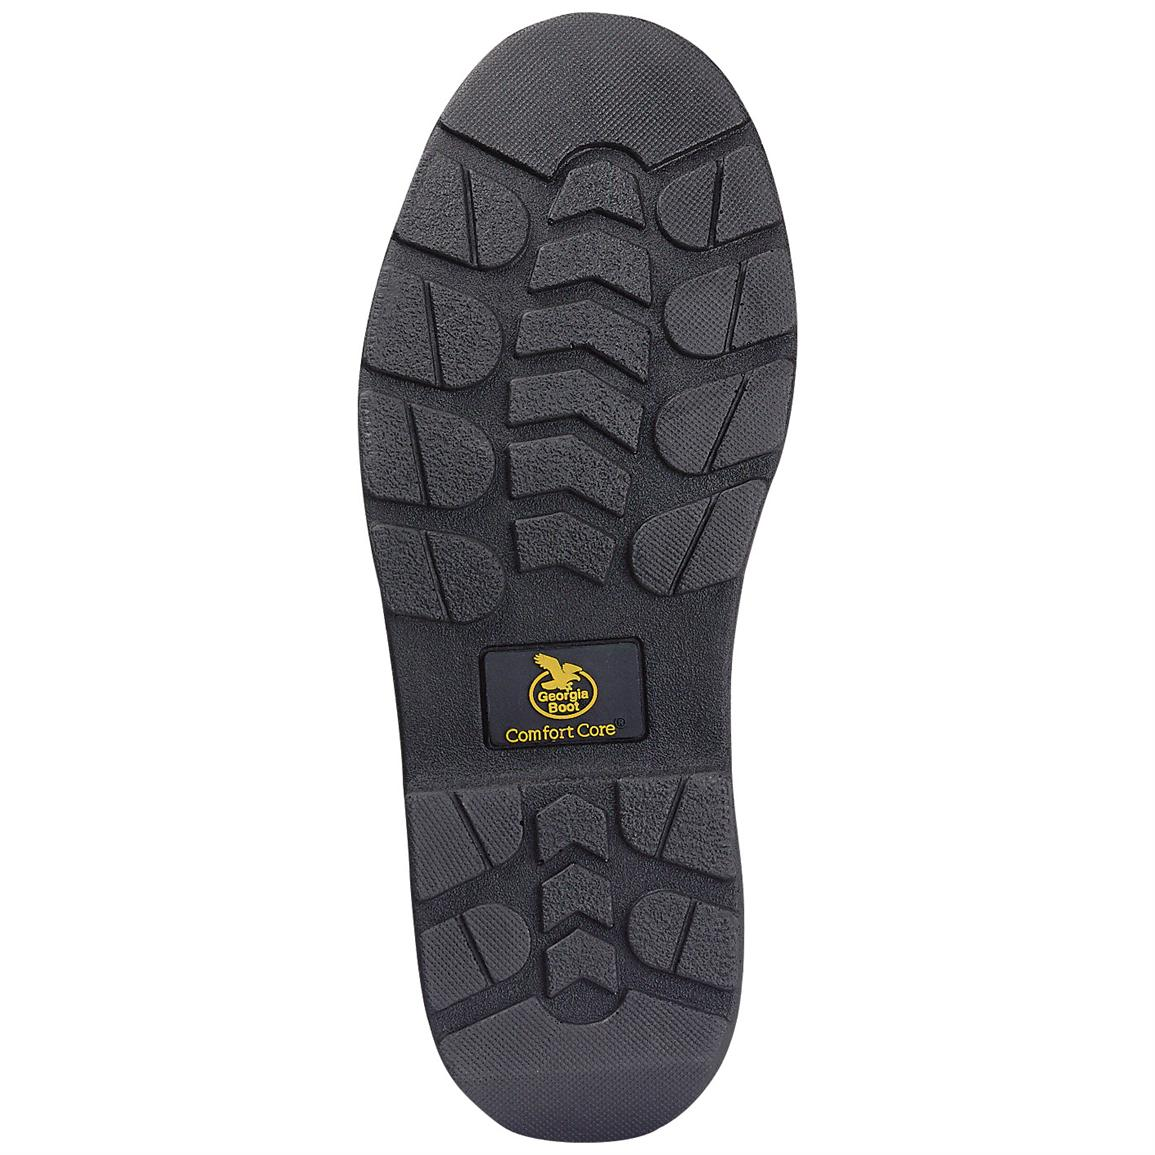 Polyurethane Eagle Light lug outsole for traction